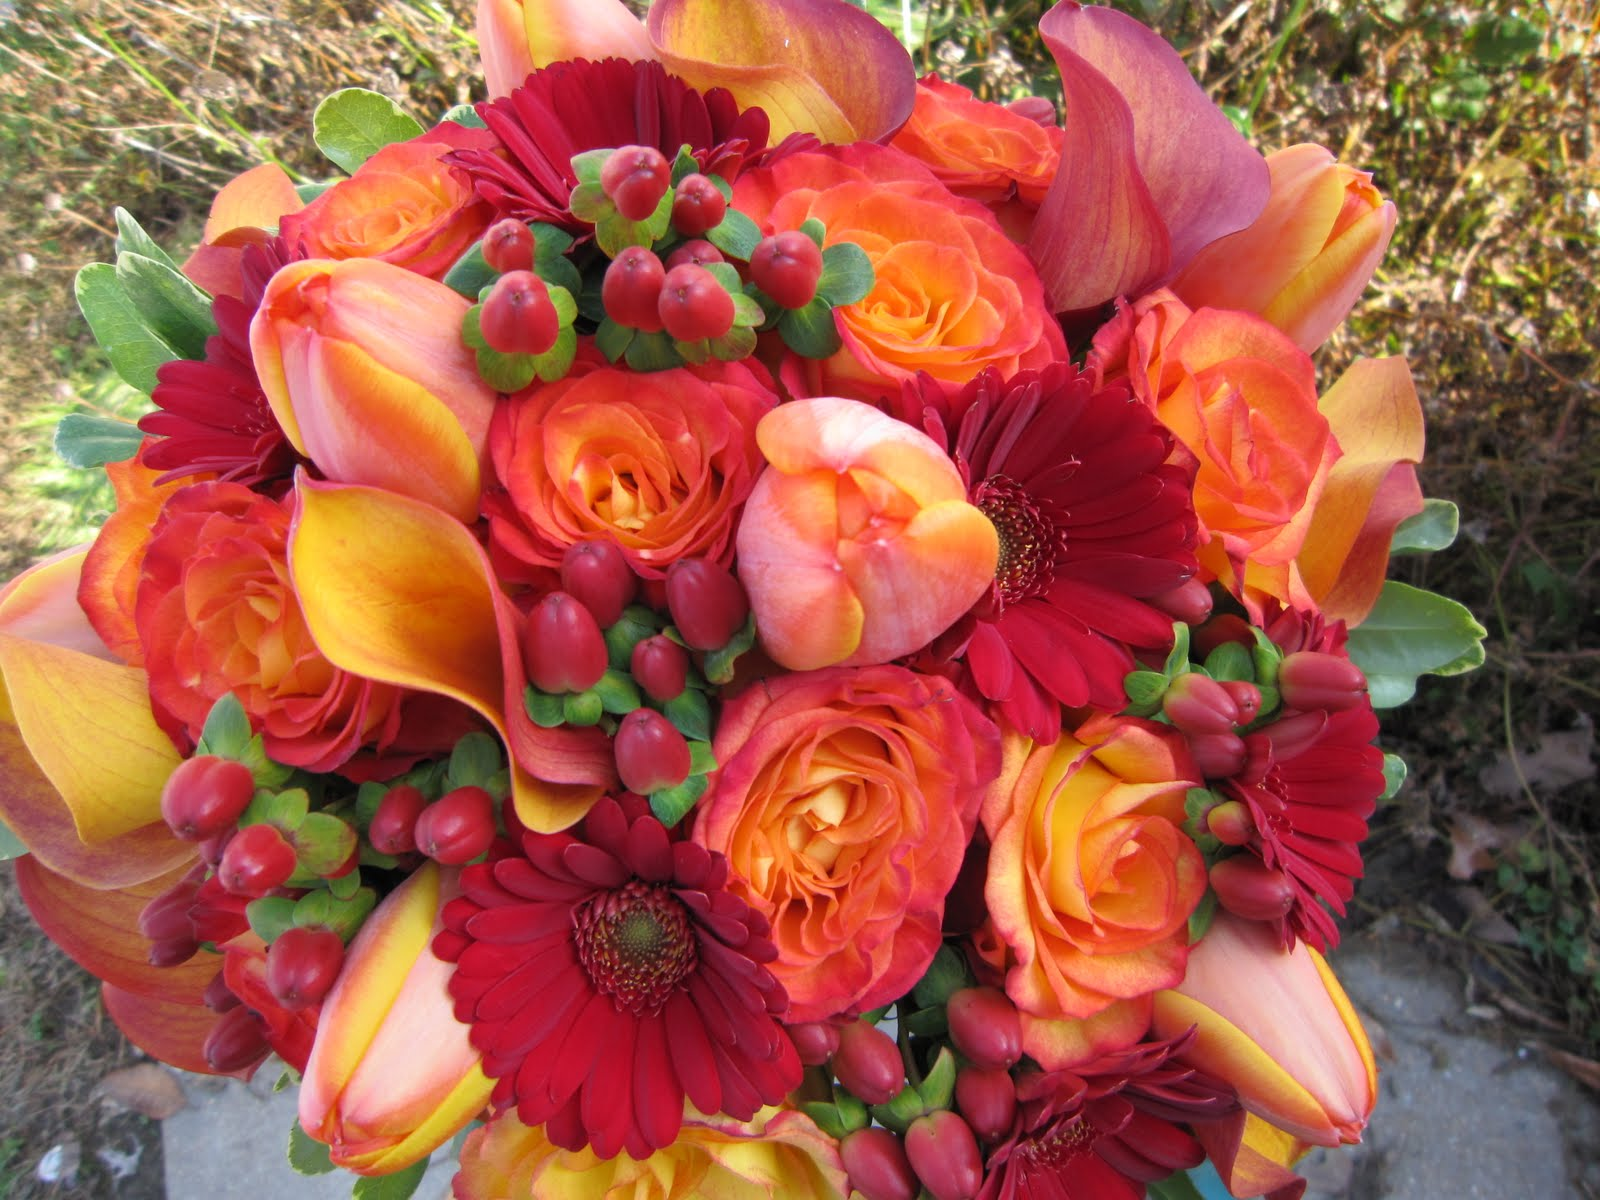 fall flowers for weddings flowers such bright flowers for a bright bride and groom